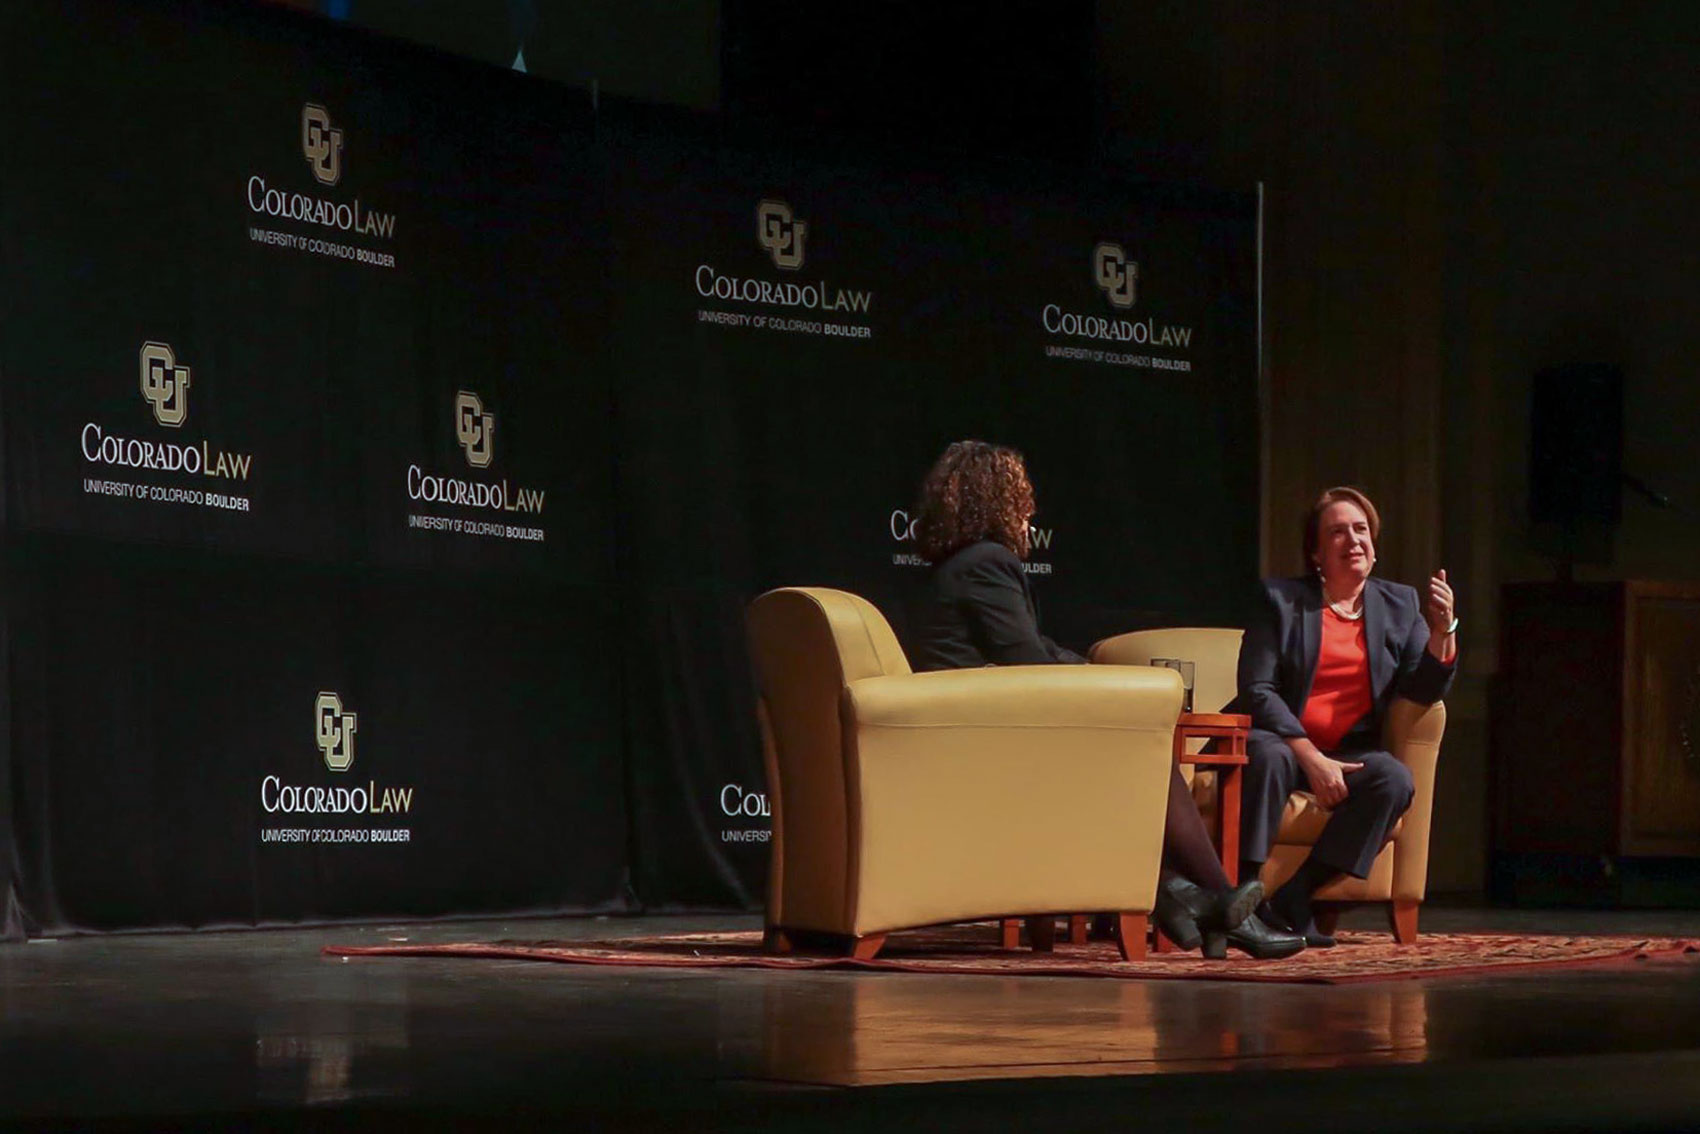 Elena Kagan delivers the 8th annual Stevens Lecture at the University of Colorado Boulder on Tuesday, Oct. 22, 2019.